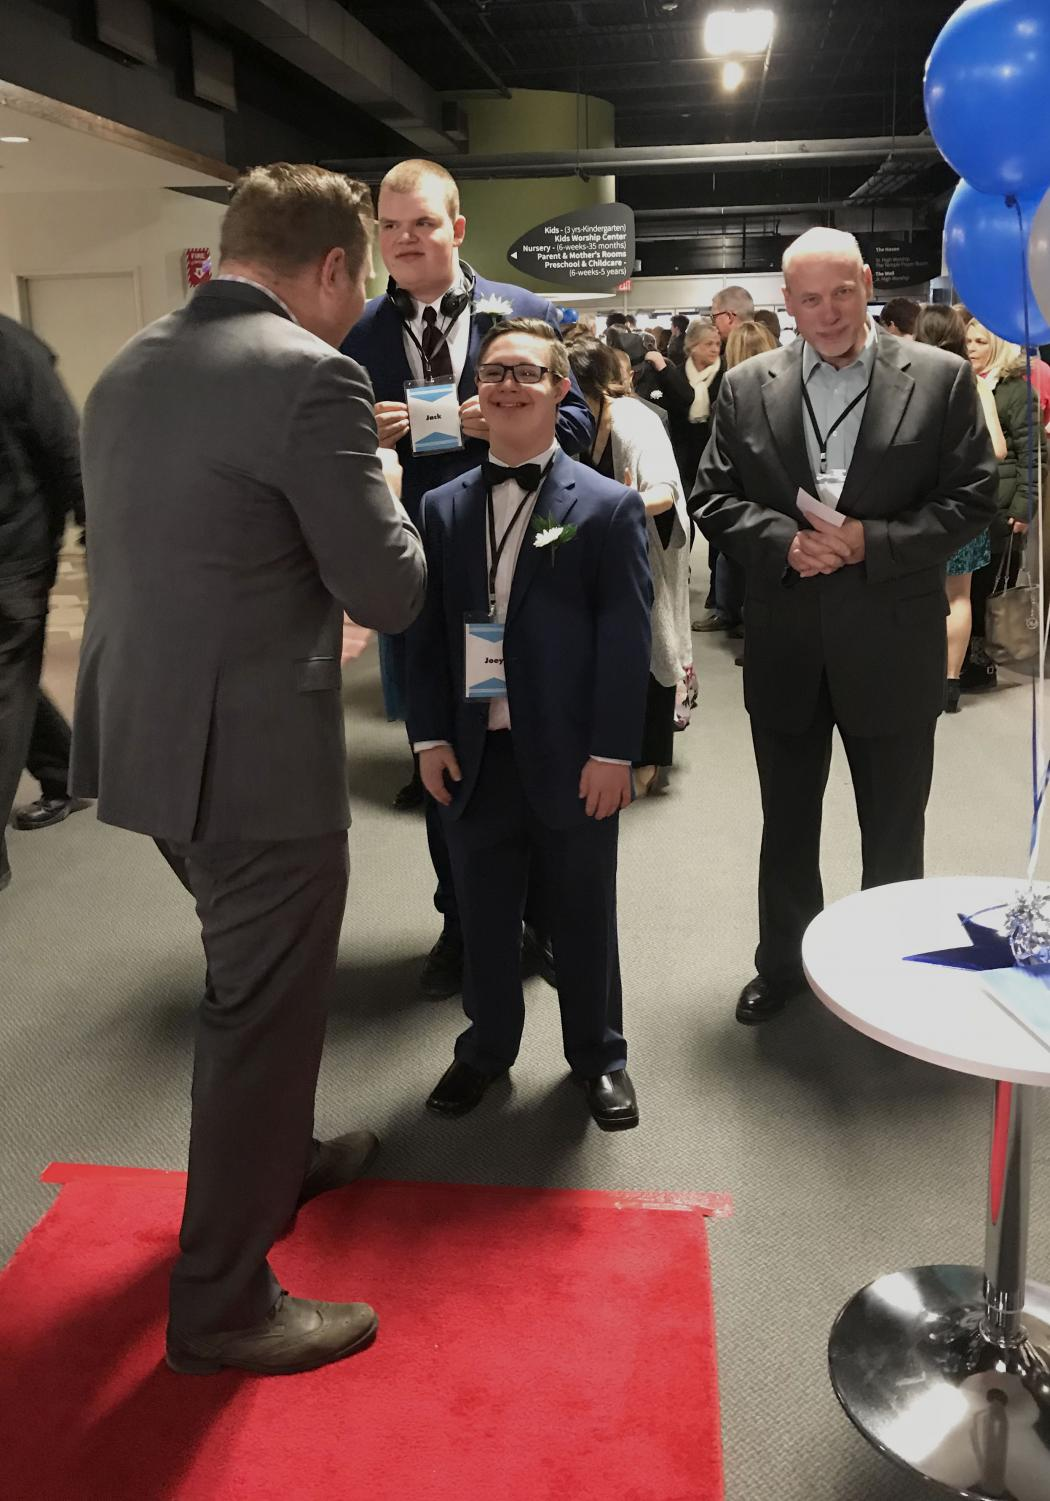 Smile beaming, junior Jospeh Drwal patiently waits for his turn to walk the red carpet. Every guest attending Night to Shine was able to walk the carpet while their name was announced.